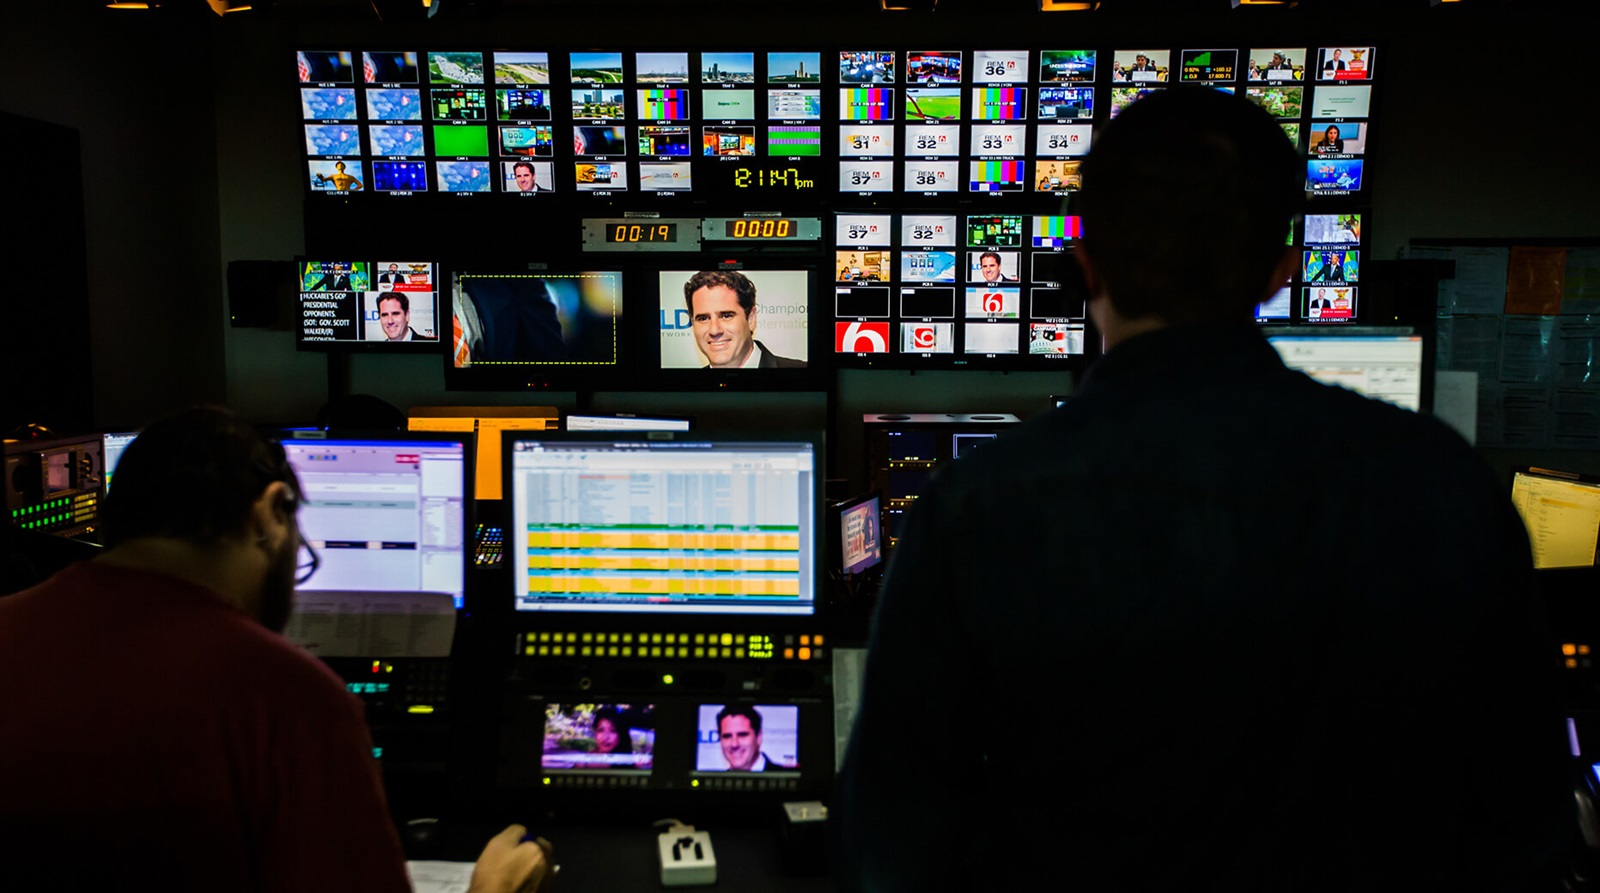 news team manages assets with smart metadata